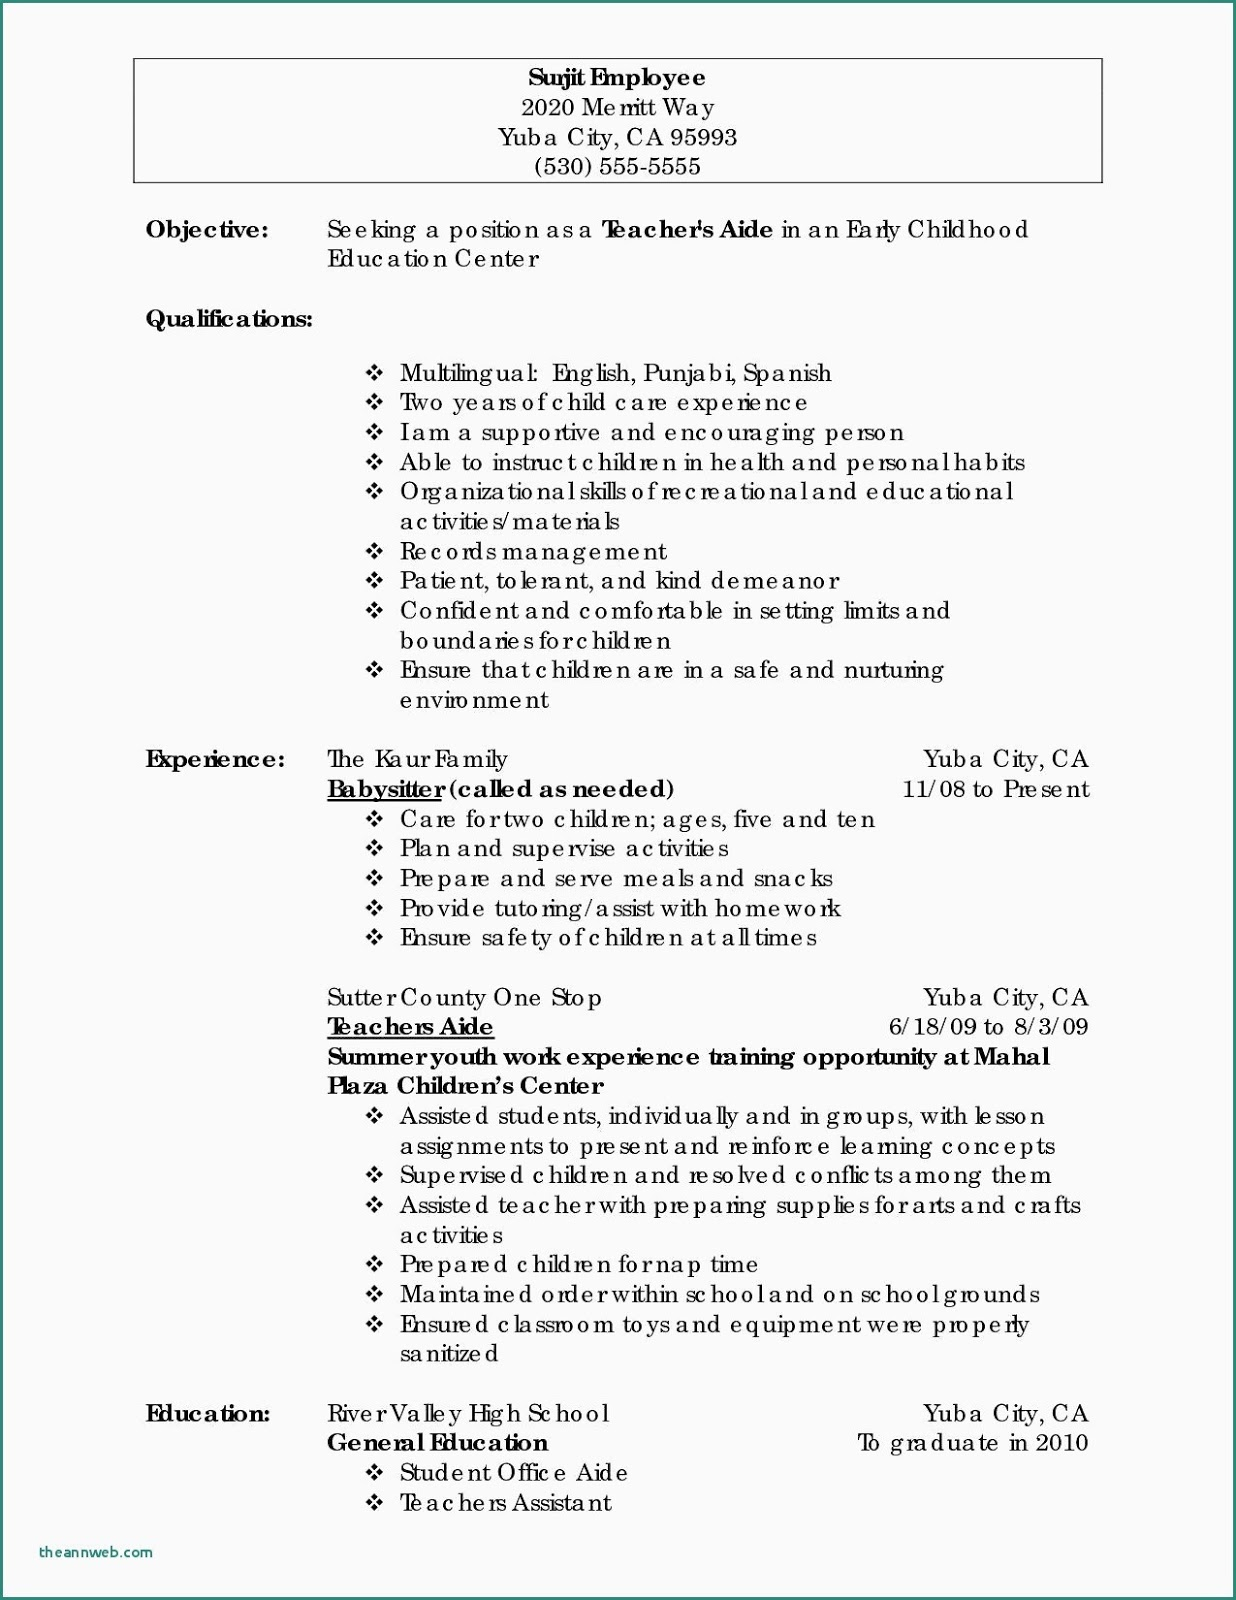 high school student resume examples high school student resume examples for college high school student resume examples pdf high school student resume examples canada high school student resume examples no work experience high school student resume examples first job high school student resume examples australia high school student resume examples 2019 high school student resume examples 2018 high school student resume examples for jobs high school student resume examples skills high school student resume examples word high school student resume samples with objectives high school college resume examples